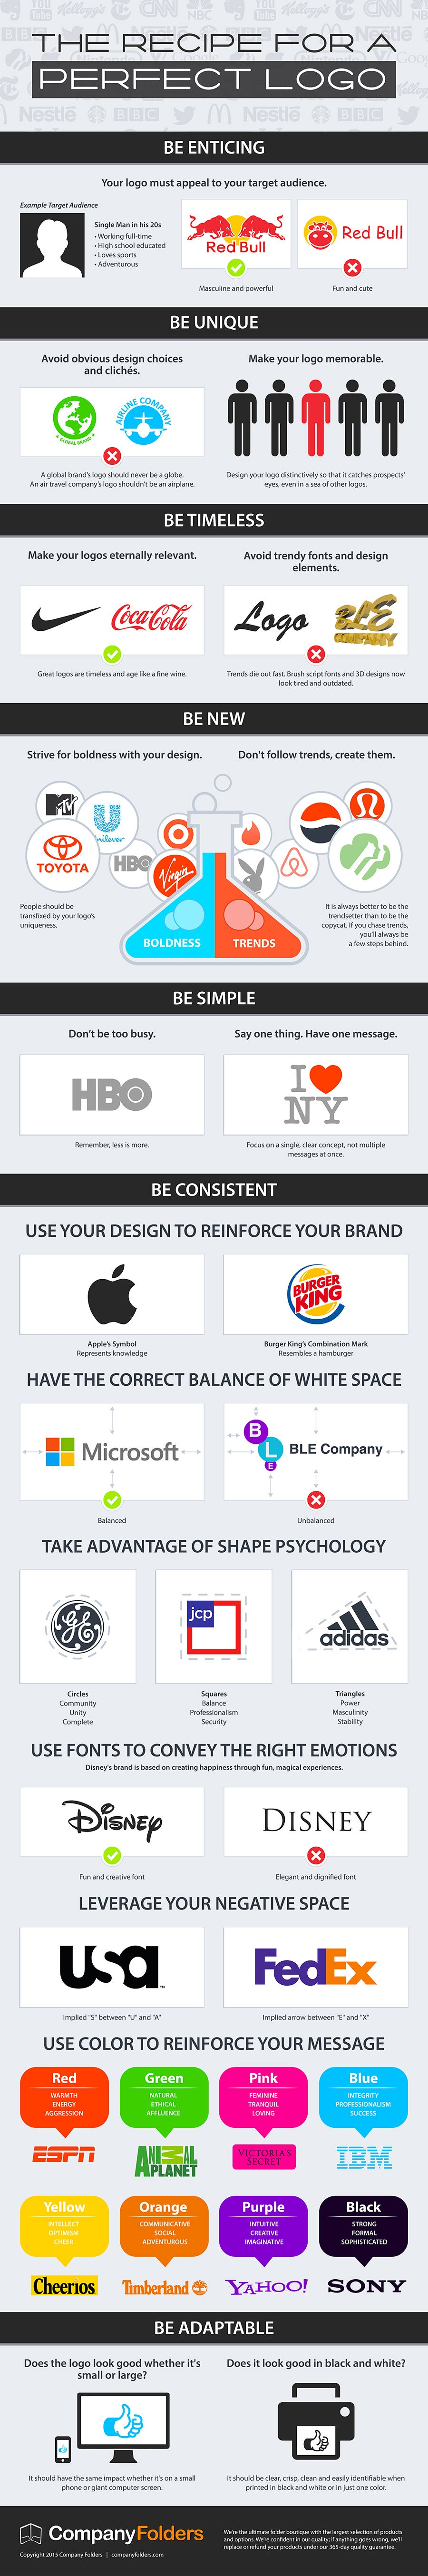 design business logo (Infographic)